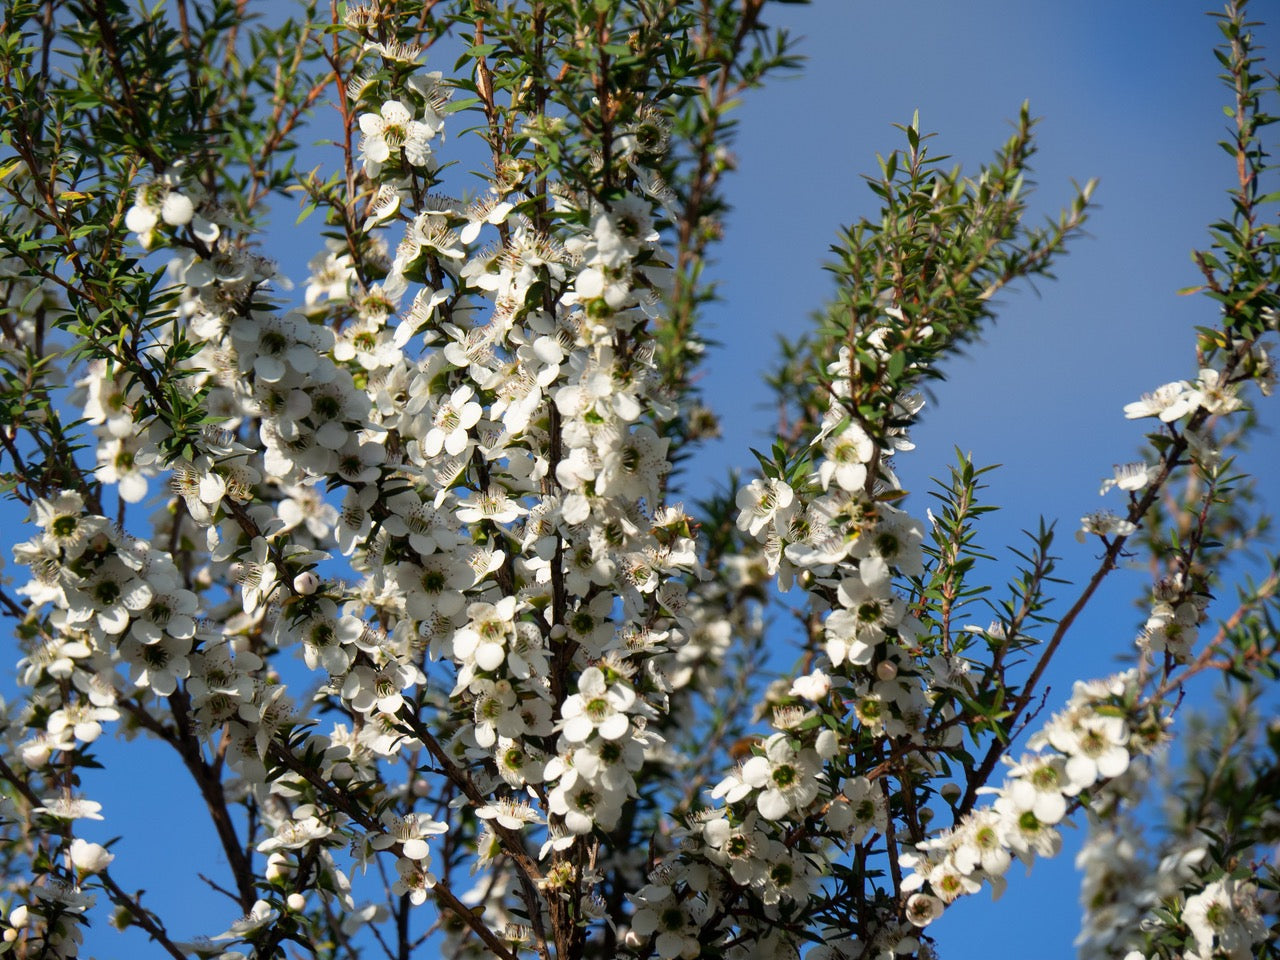 Manuka honey tree branches, flowers